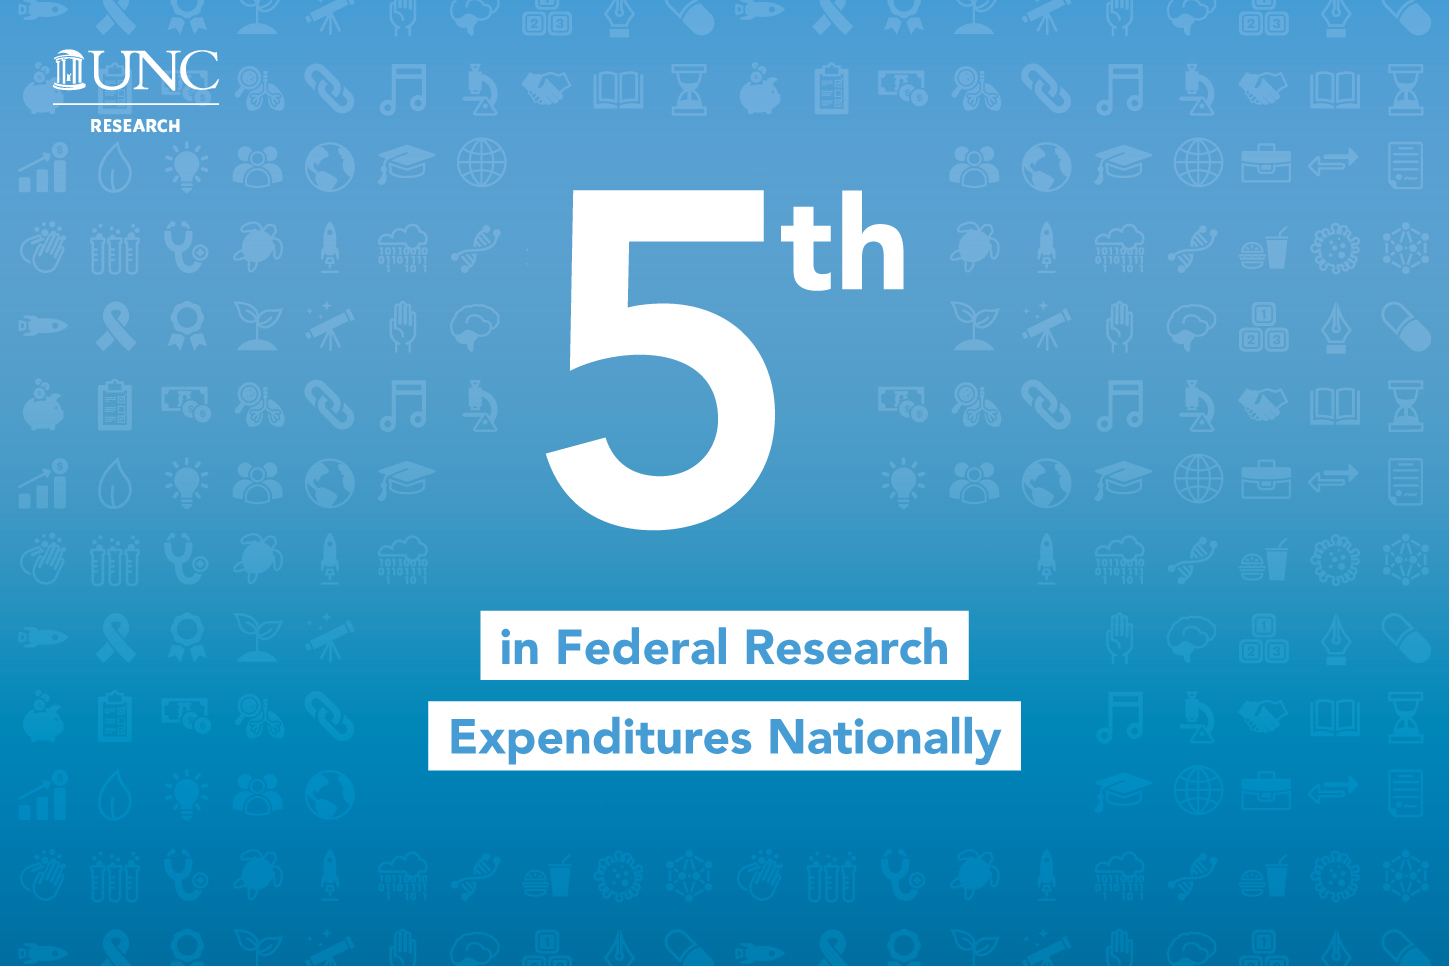 UNC ranks 5th in federal research expenditures nationally